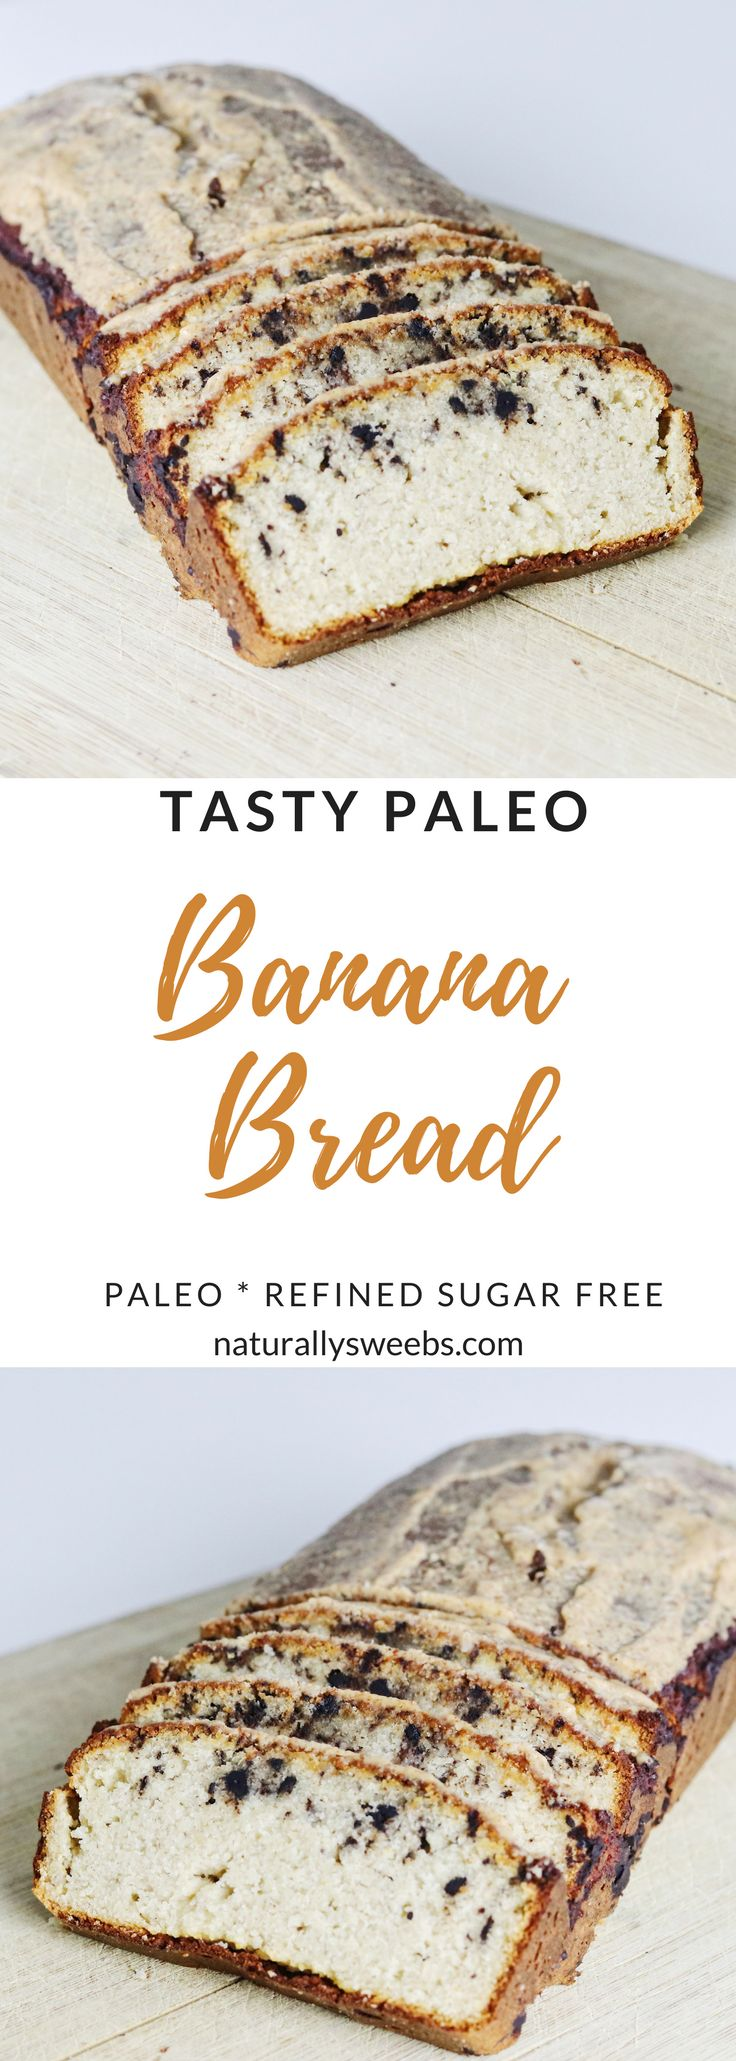 Healthy paleo banana bread! Made with almond flour and dark chocolate. #healthy #bananabread #paleo #cleaneating